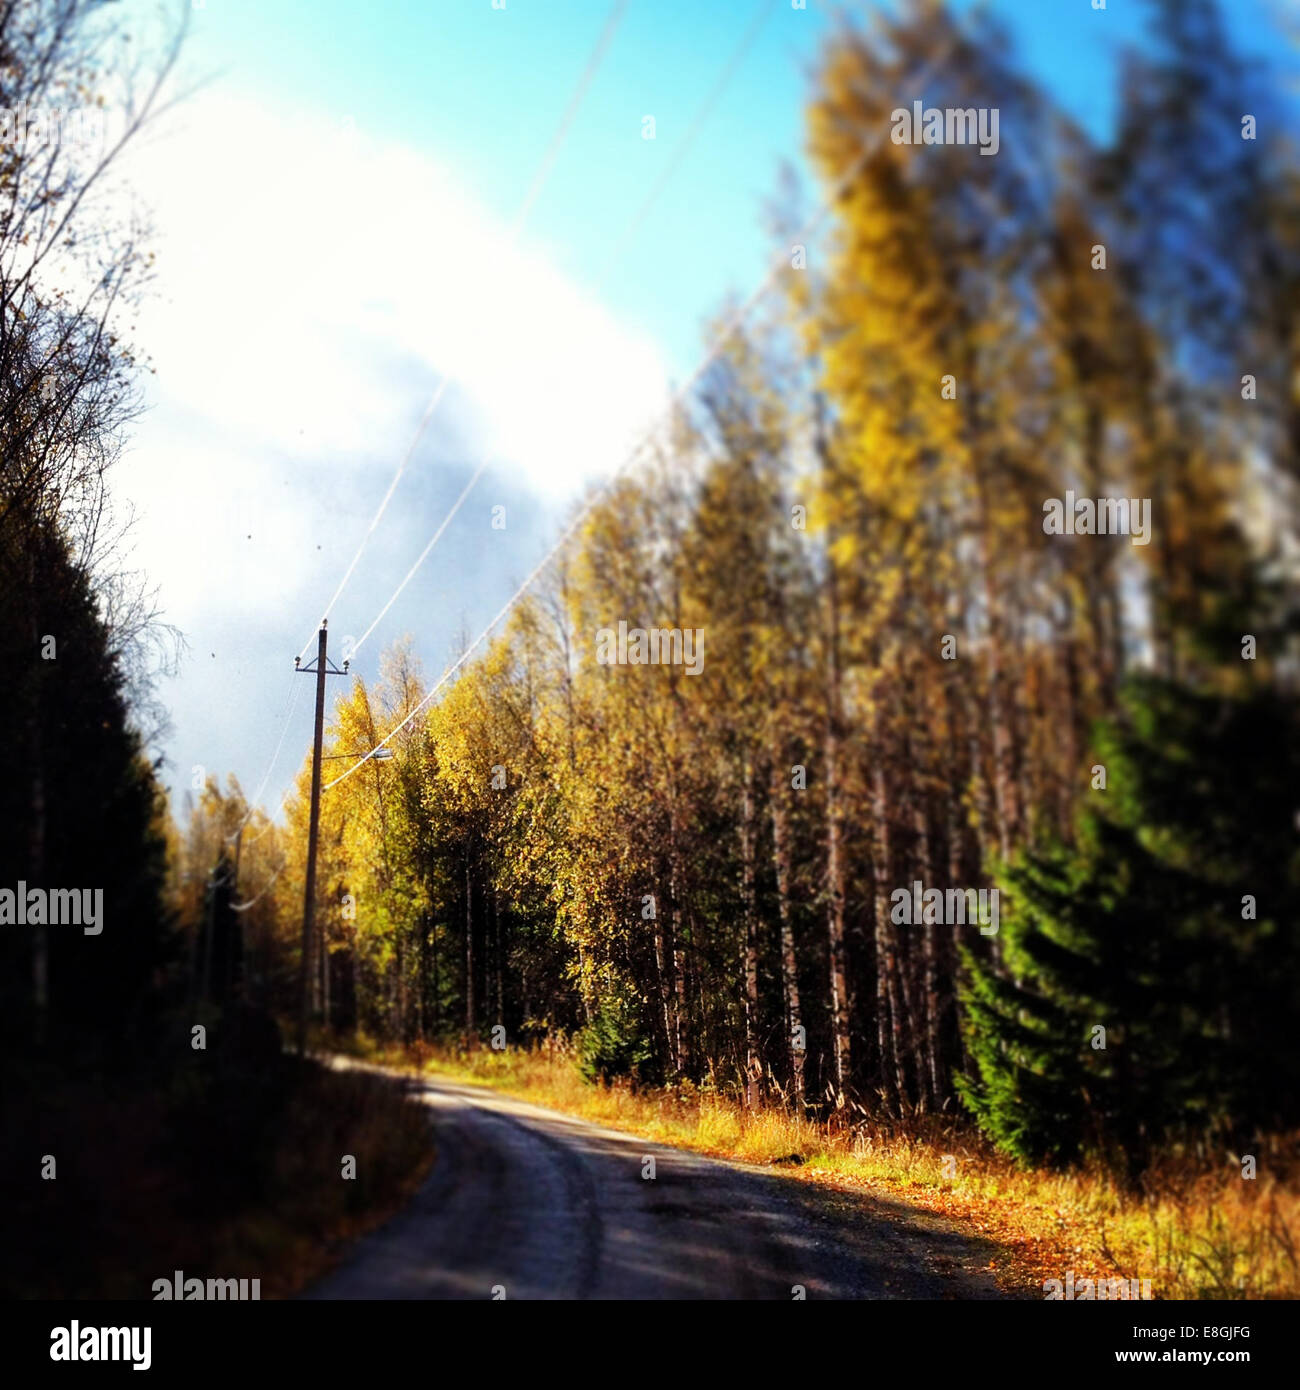 Country road through woods - Stock Image